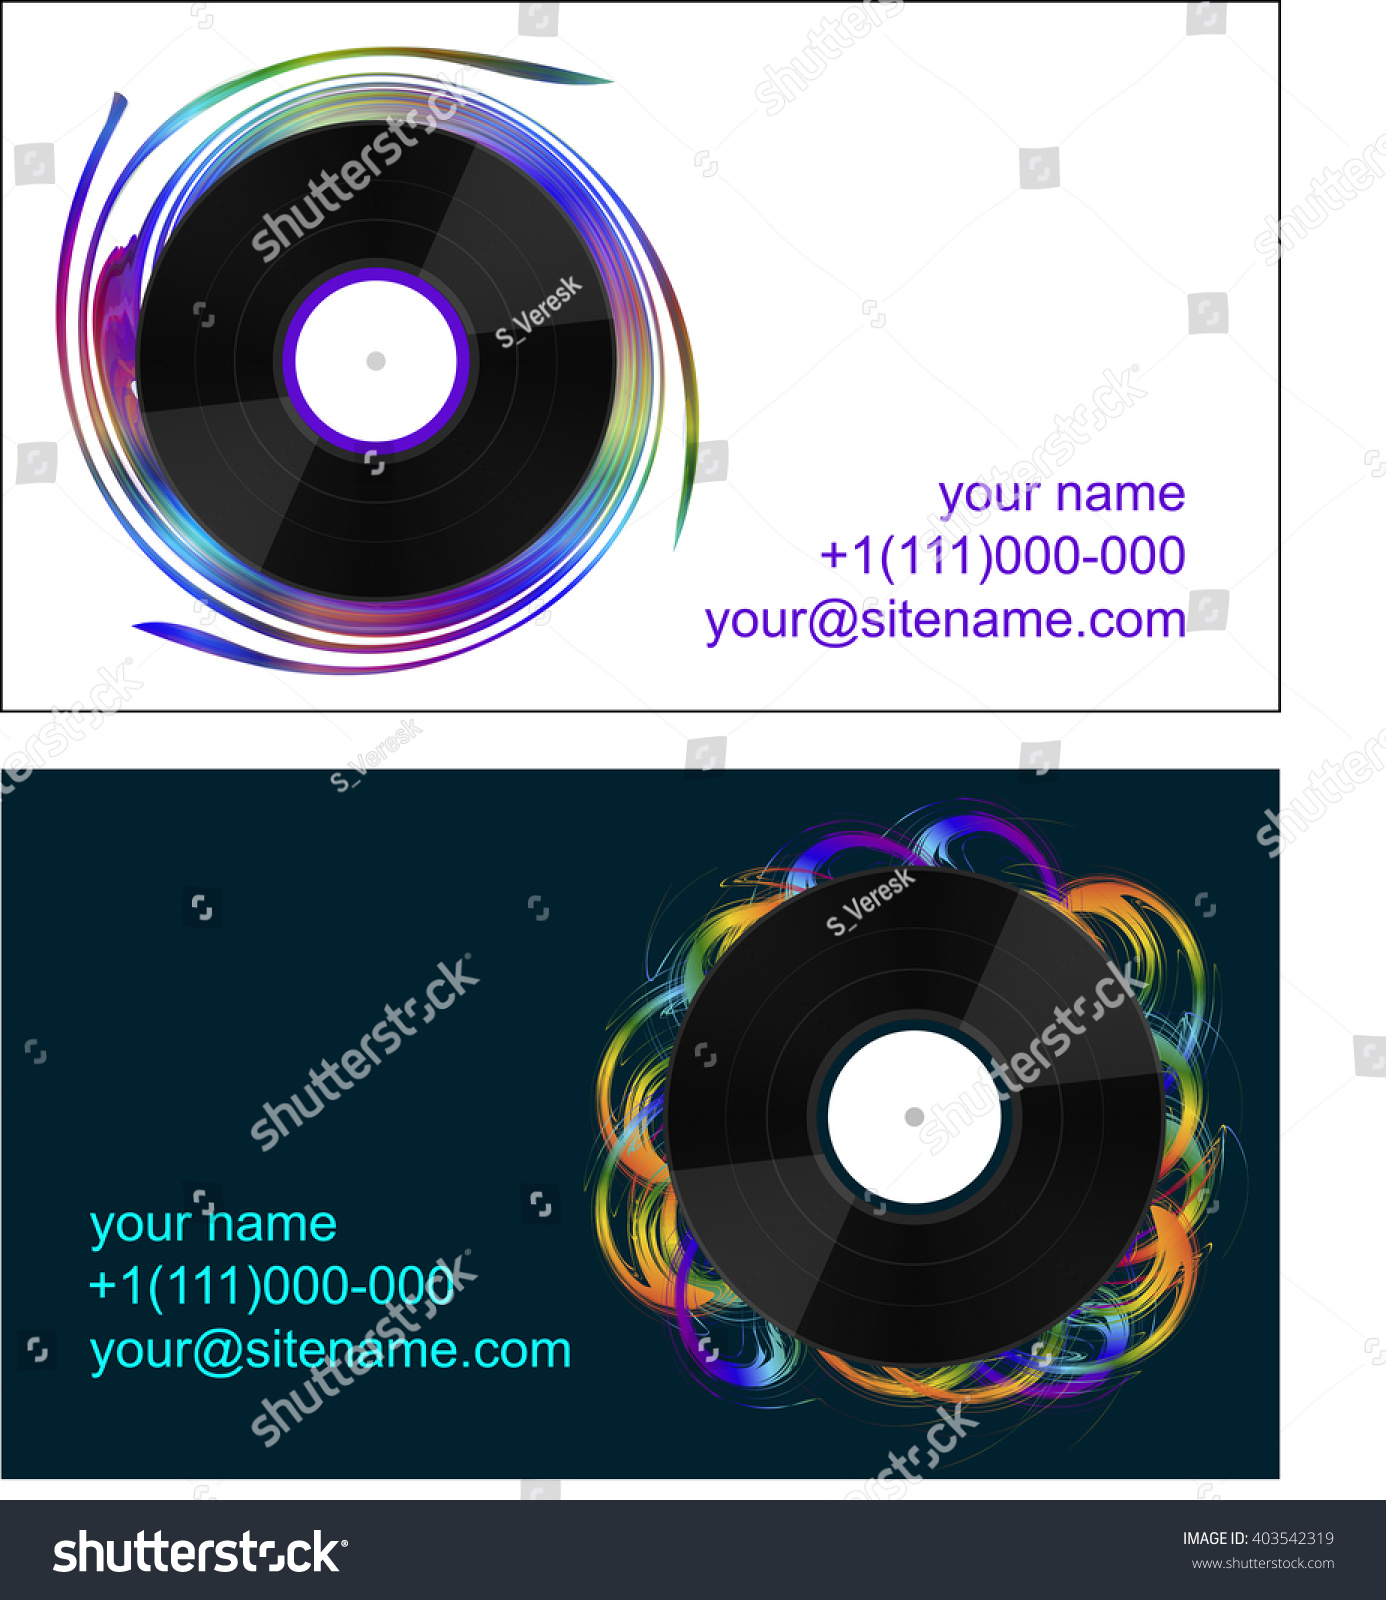 Business Cards Vinyl Records On Abstract Stock Vector HD (Royalty ...